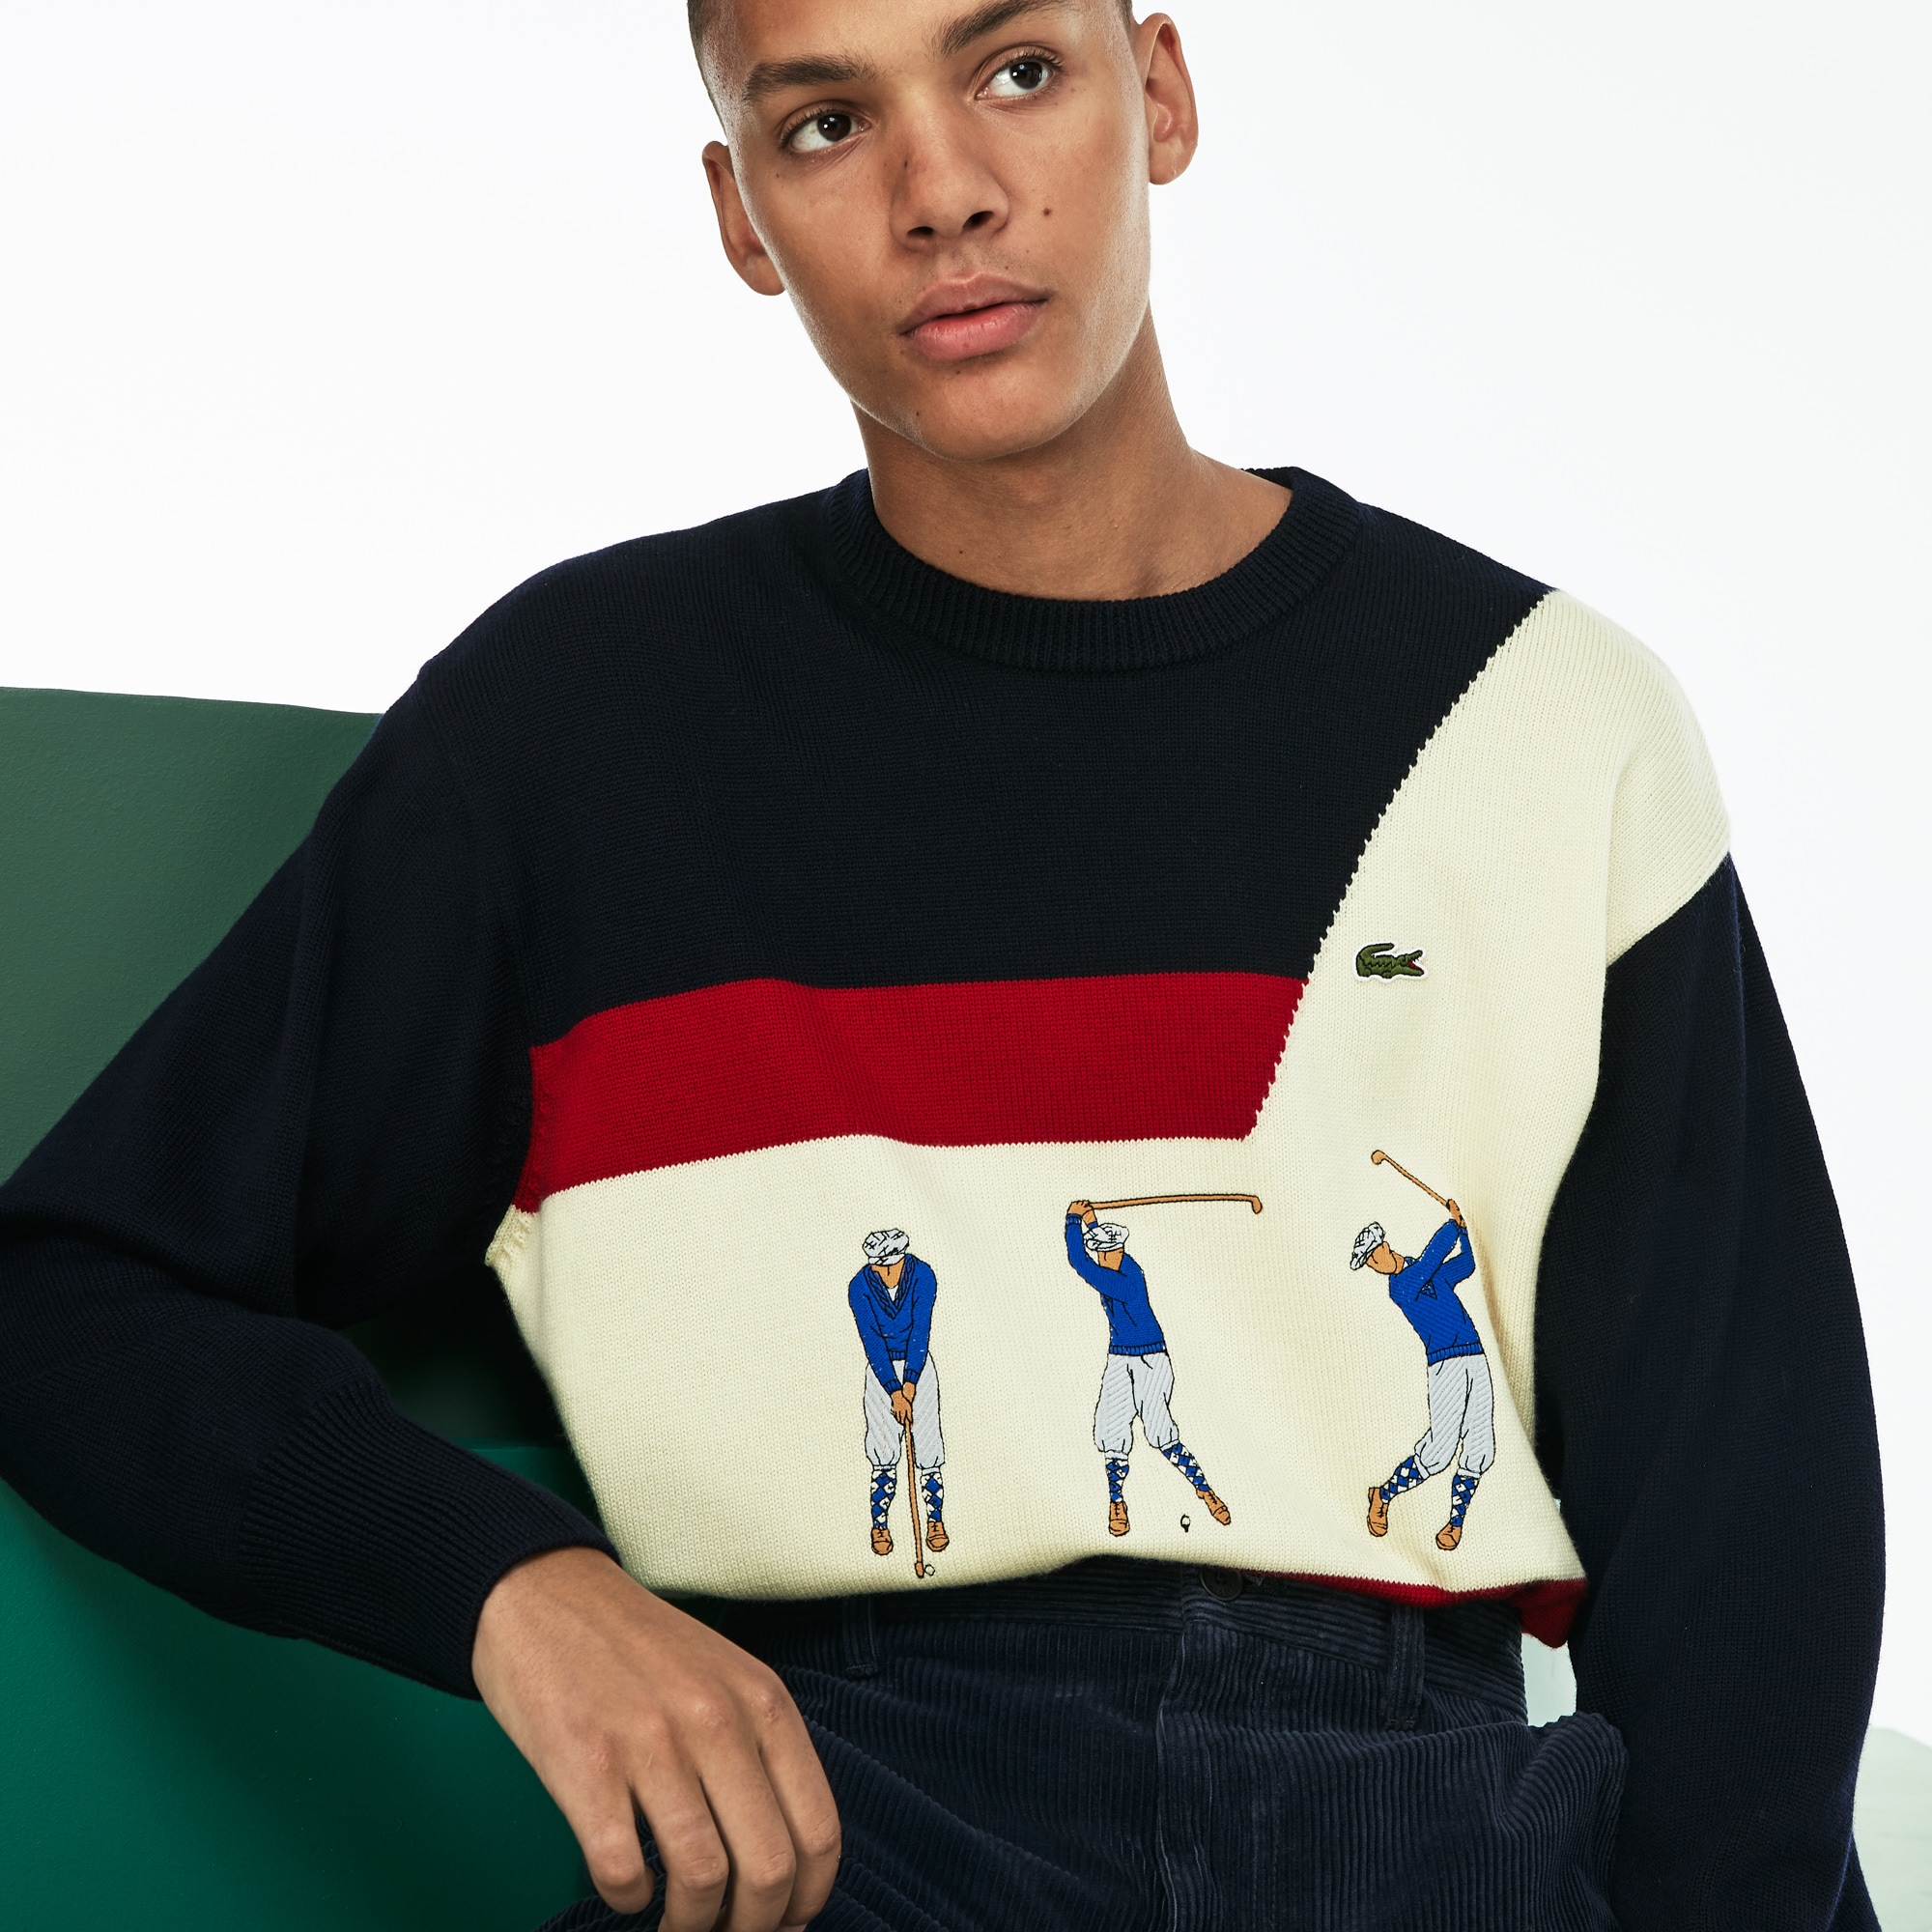 Men's Fashion Show Crew Neck Embroidered Wool Knit Sweater